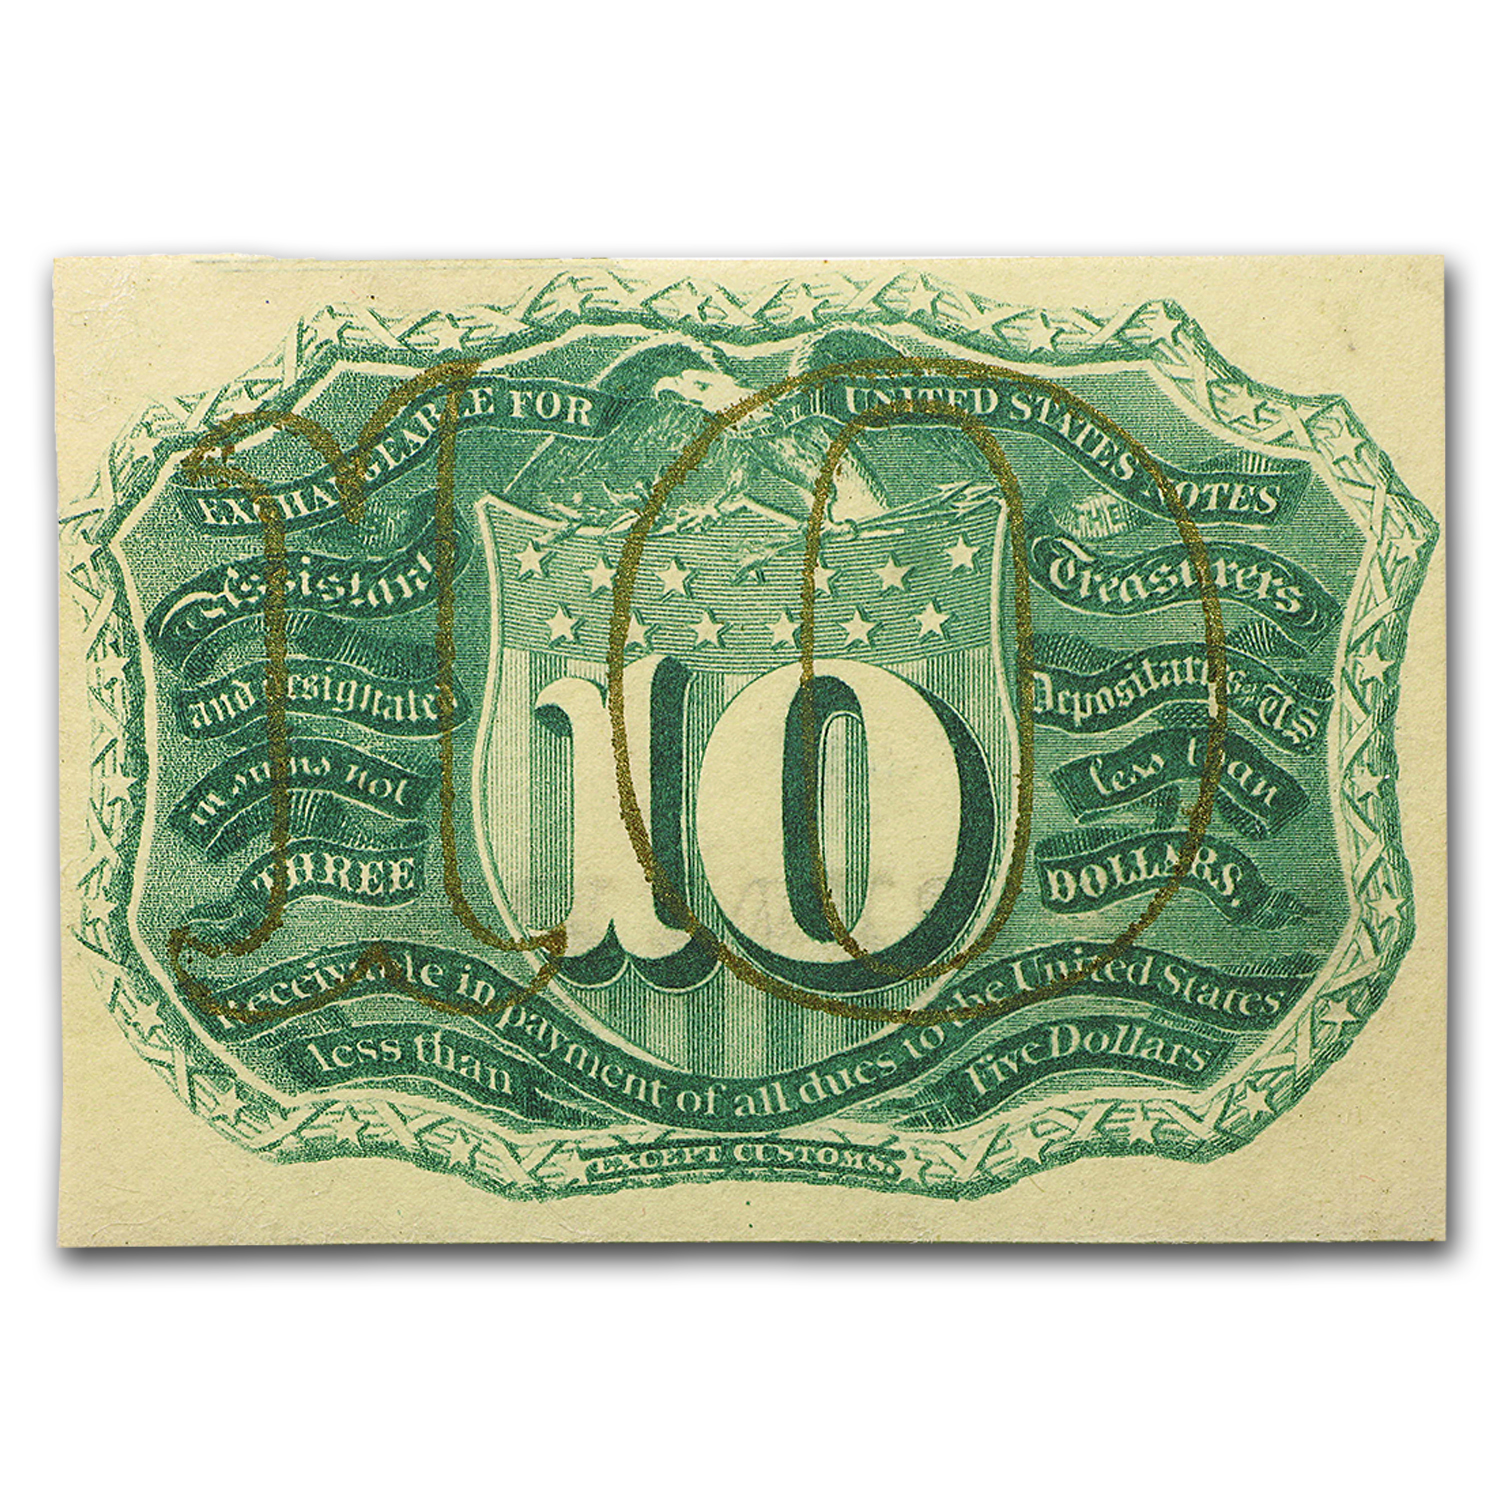 2nd Issue Fractional Currency 10 Cents CU